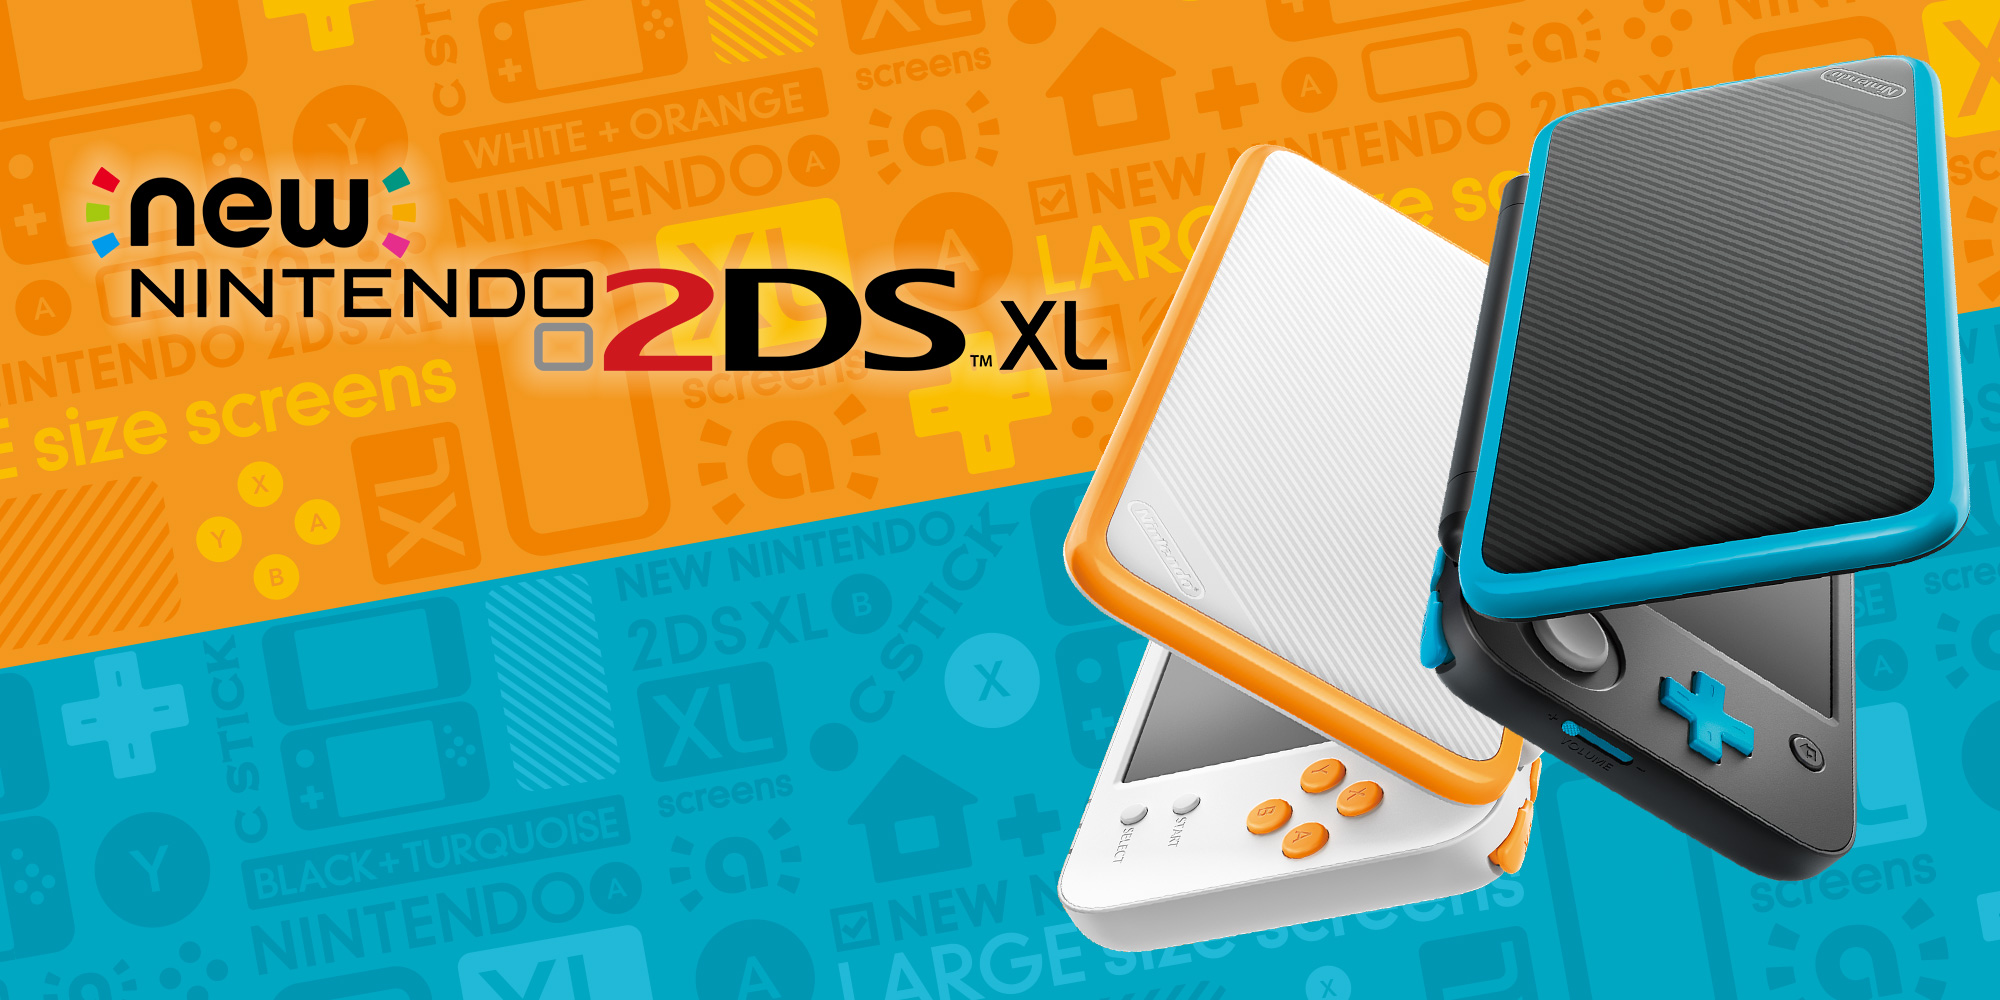 New Nintendo 2DS XL preview - Who is this aimed at?